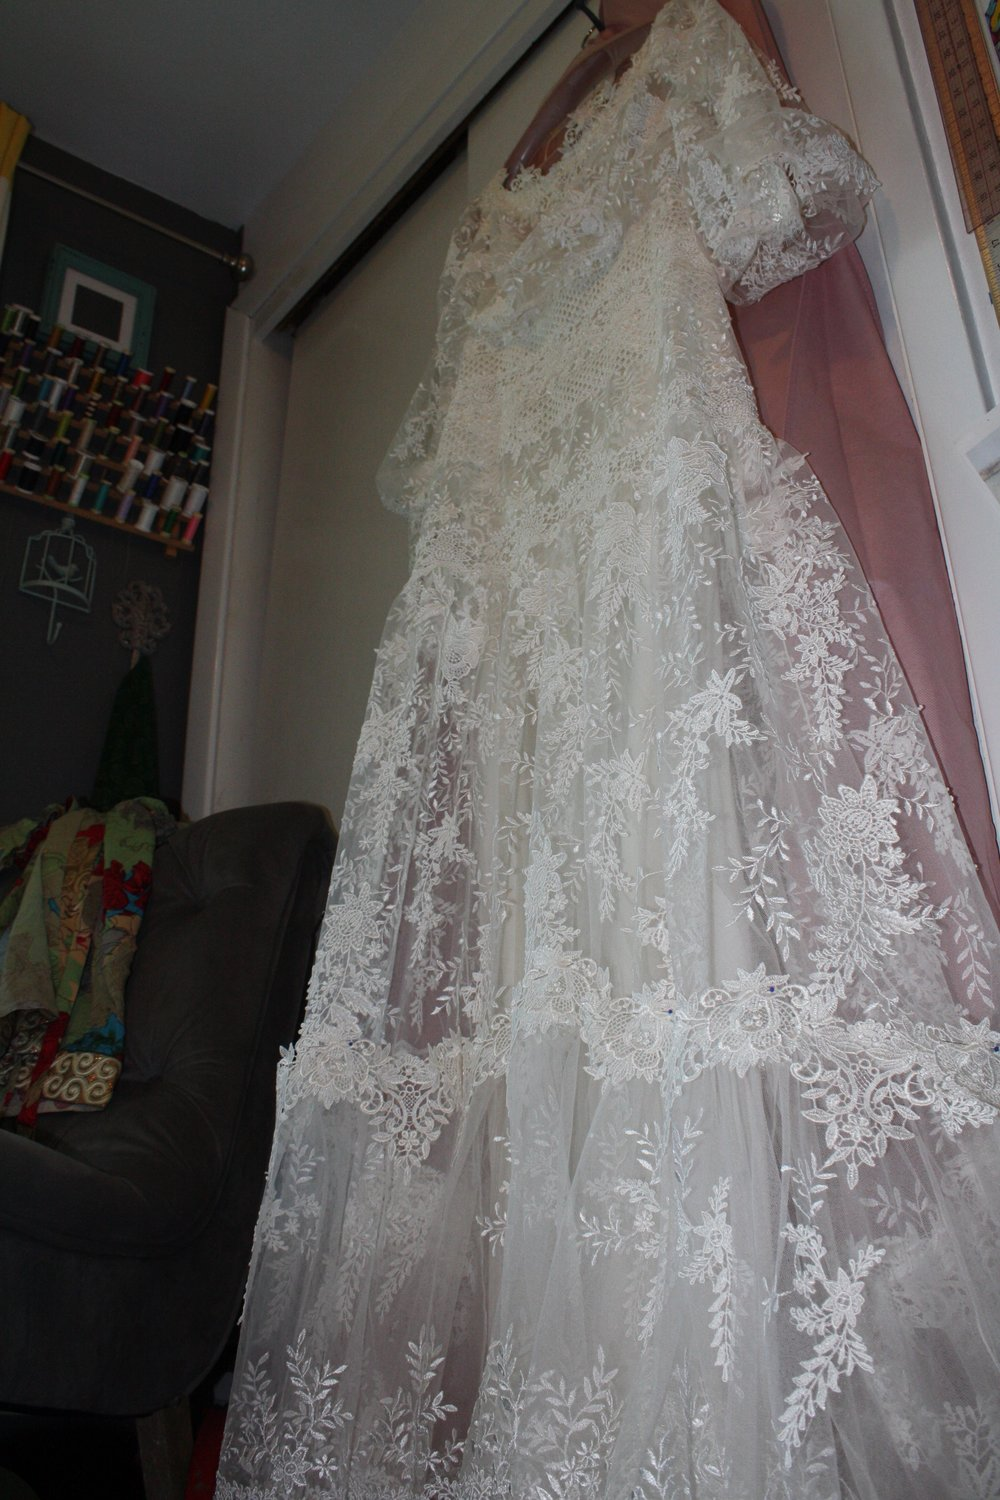 A look at the entire dress from below...